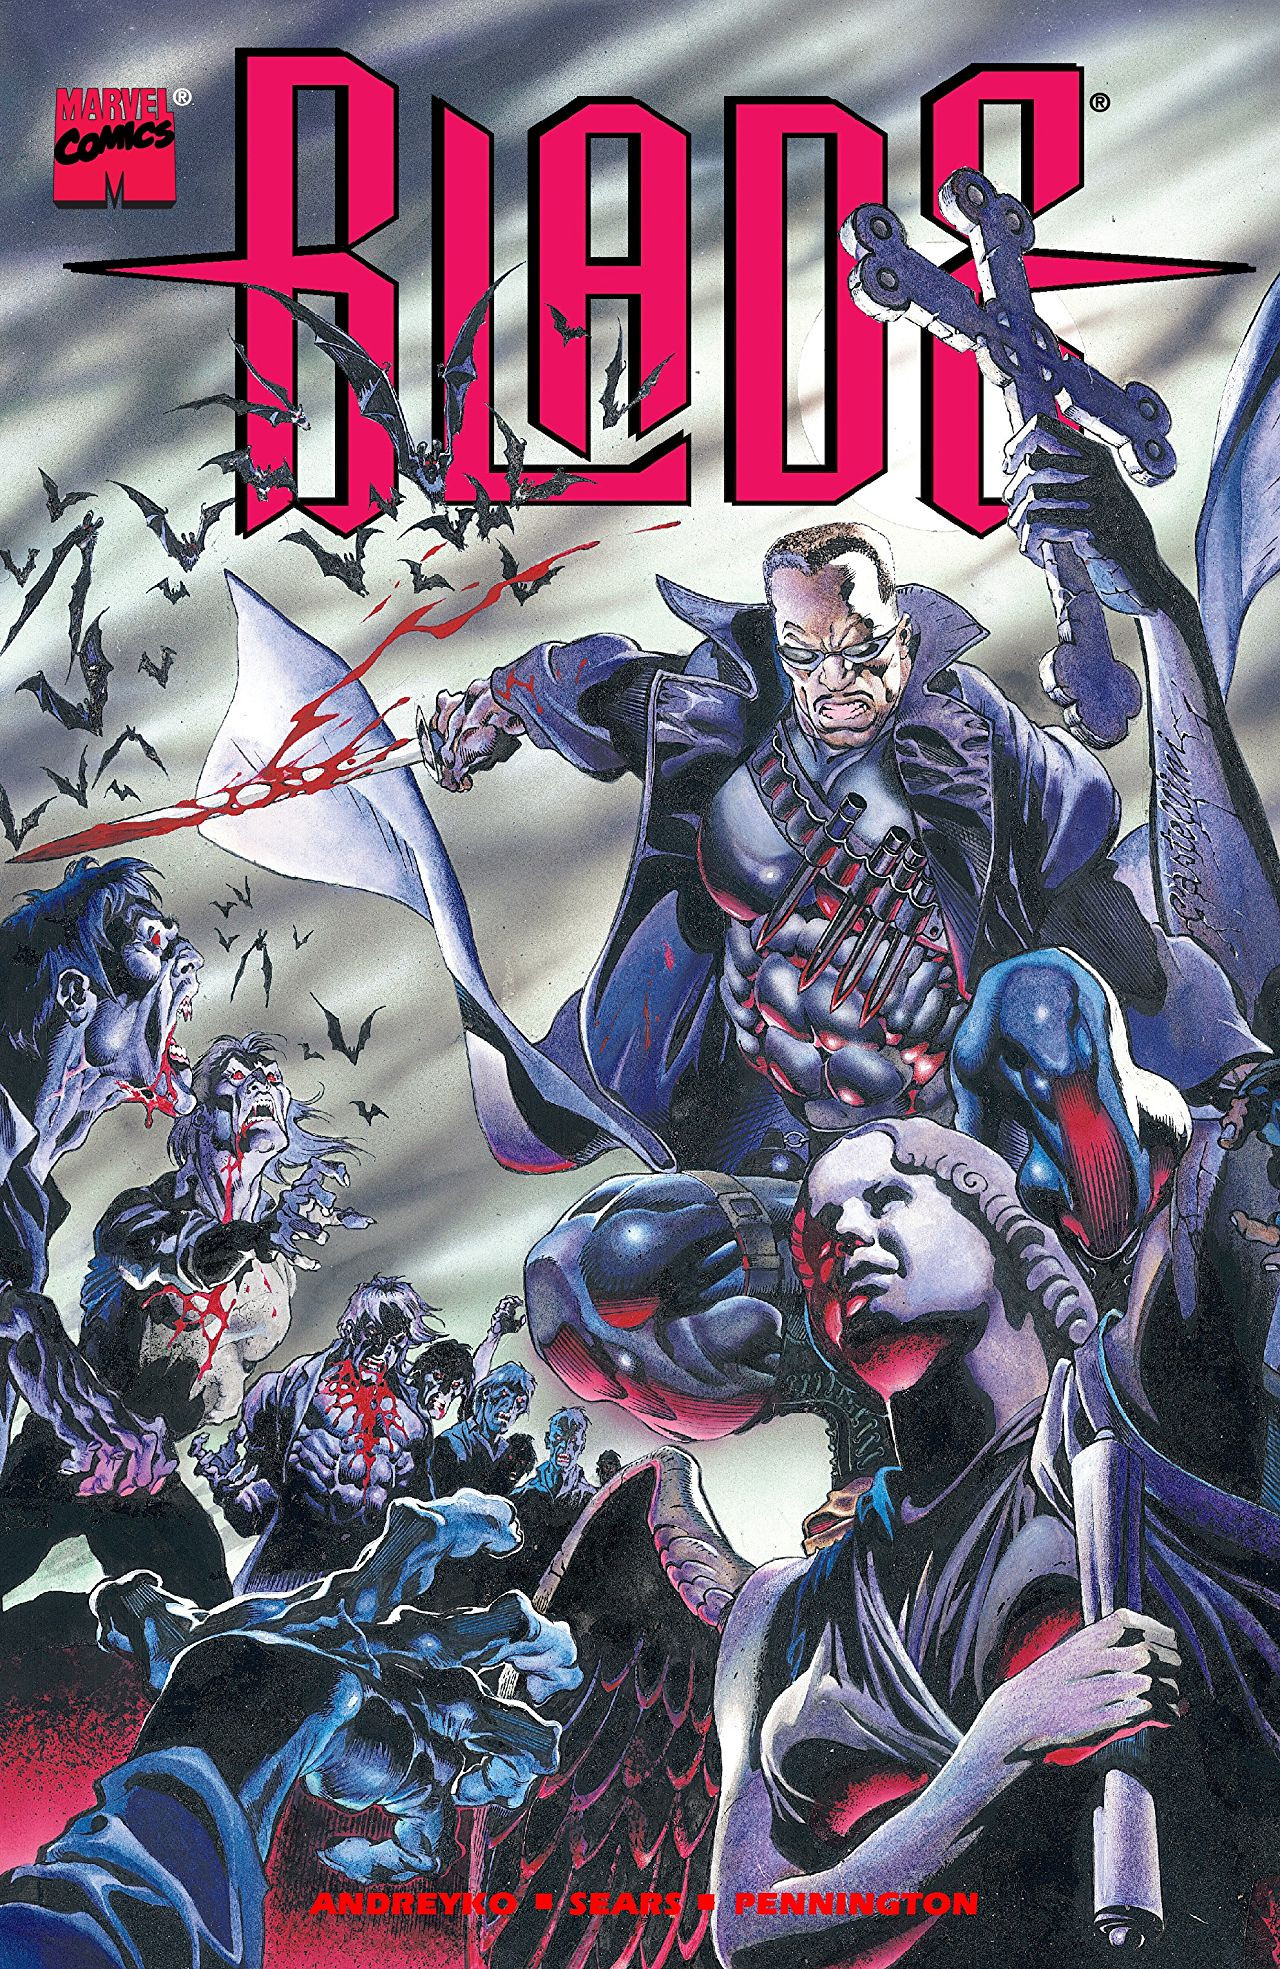 Blade: Sins of the Father Vol 1 1